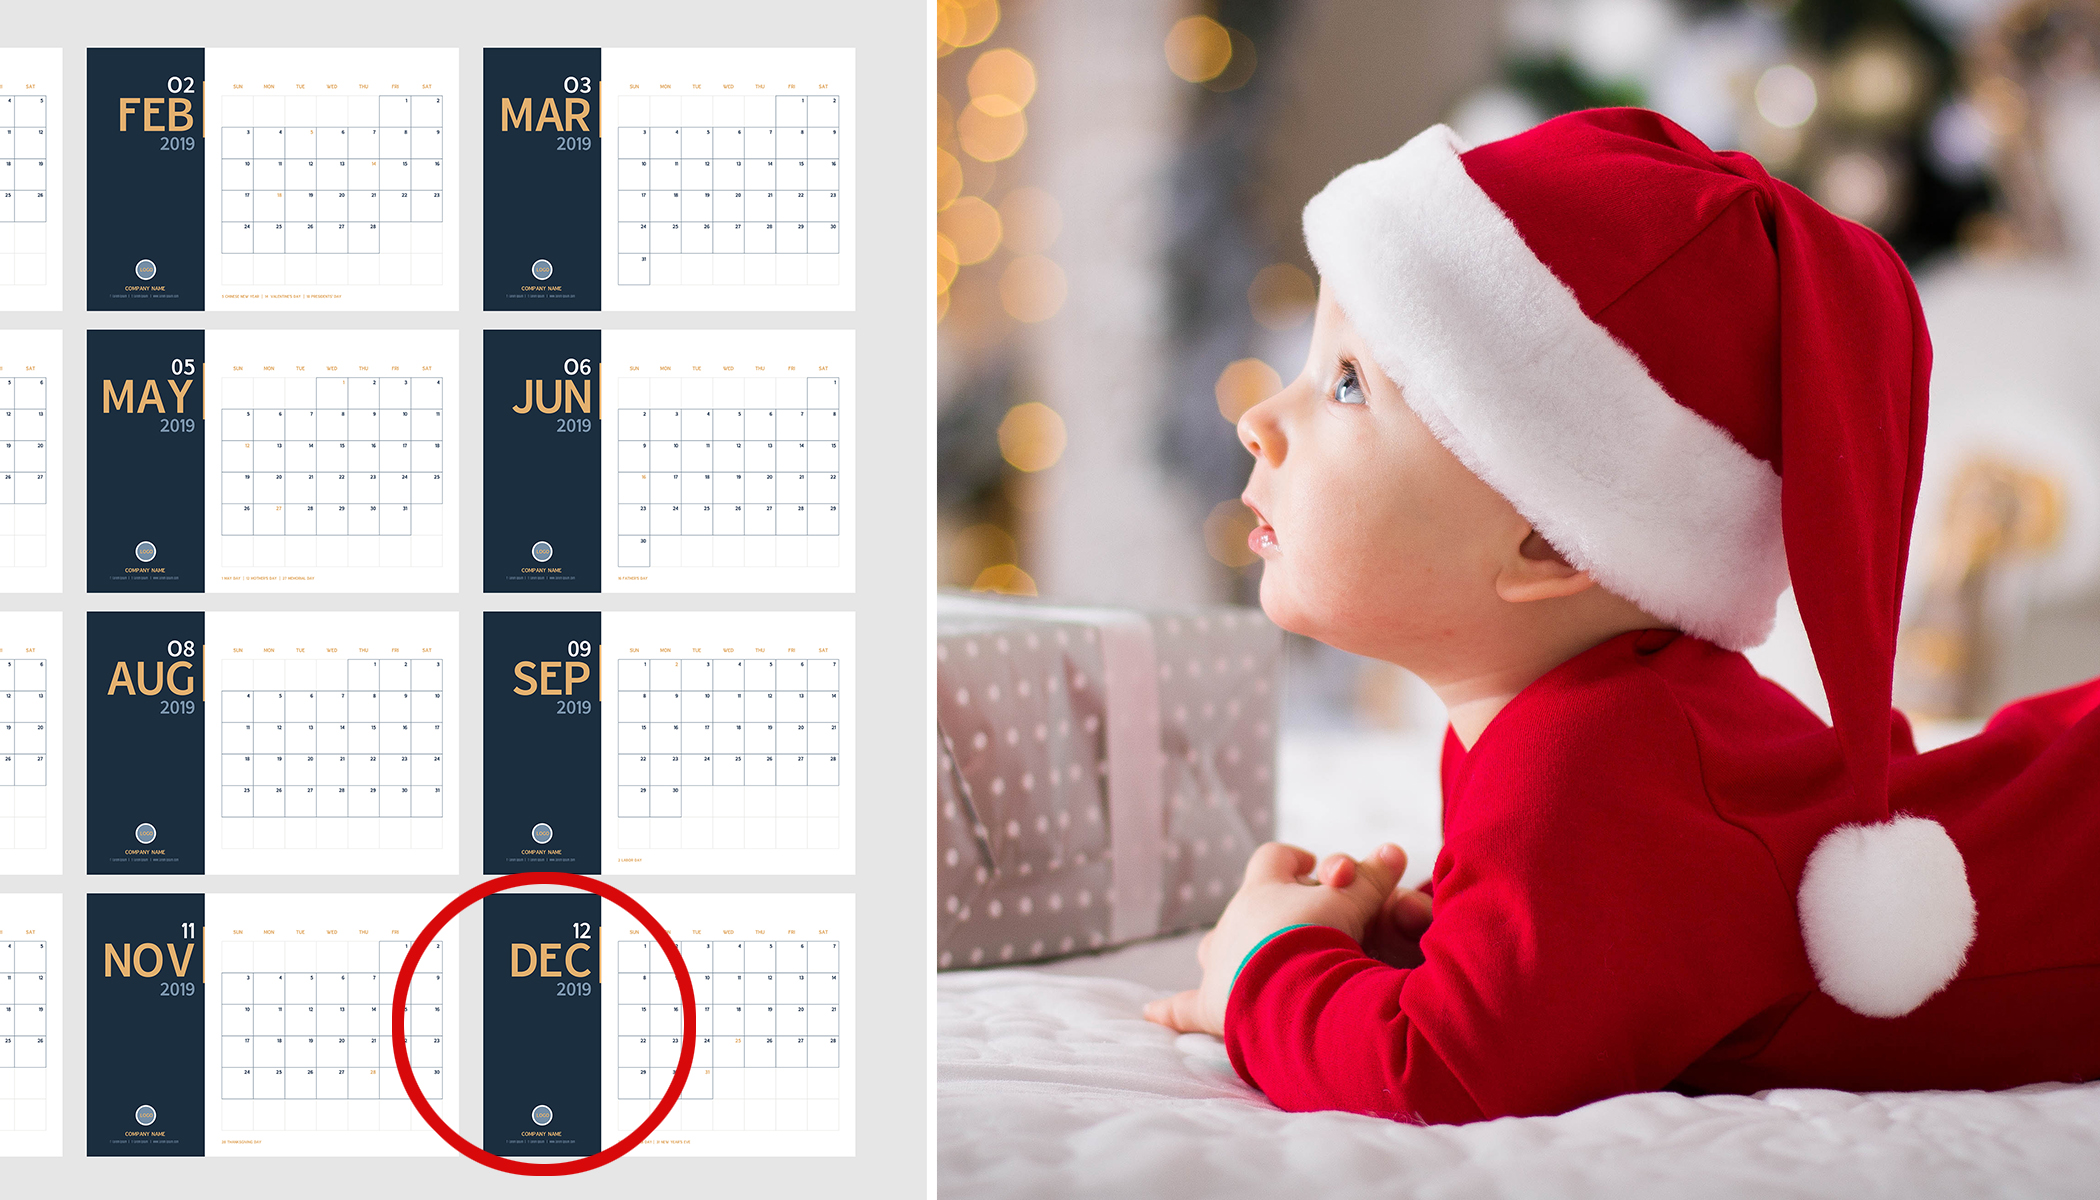 7 Reasons Why Babies Born in December Are Extra Special